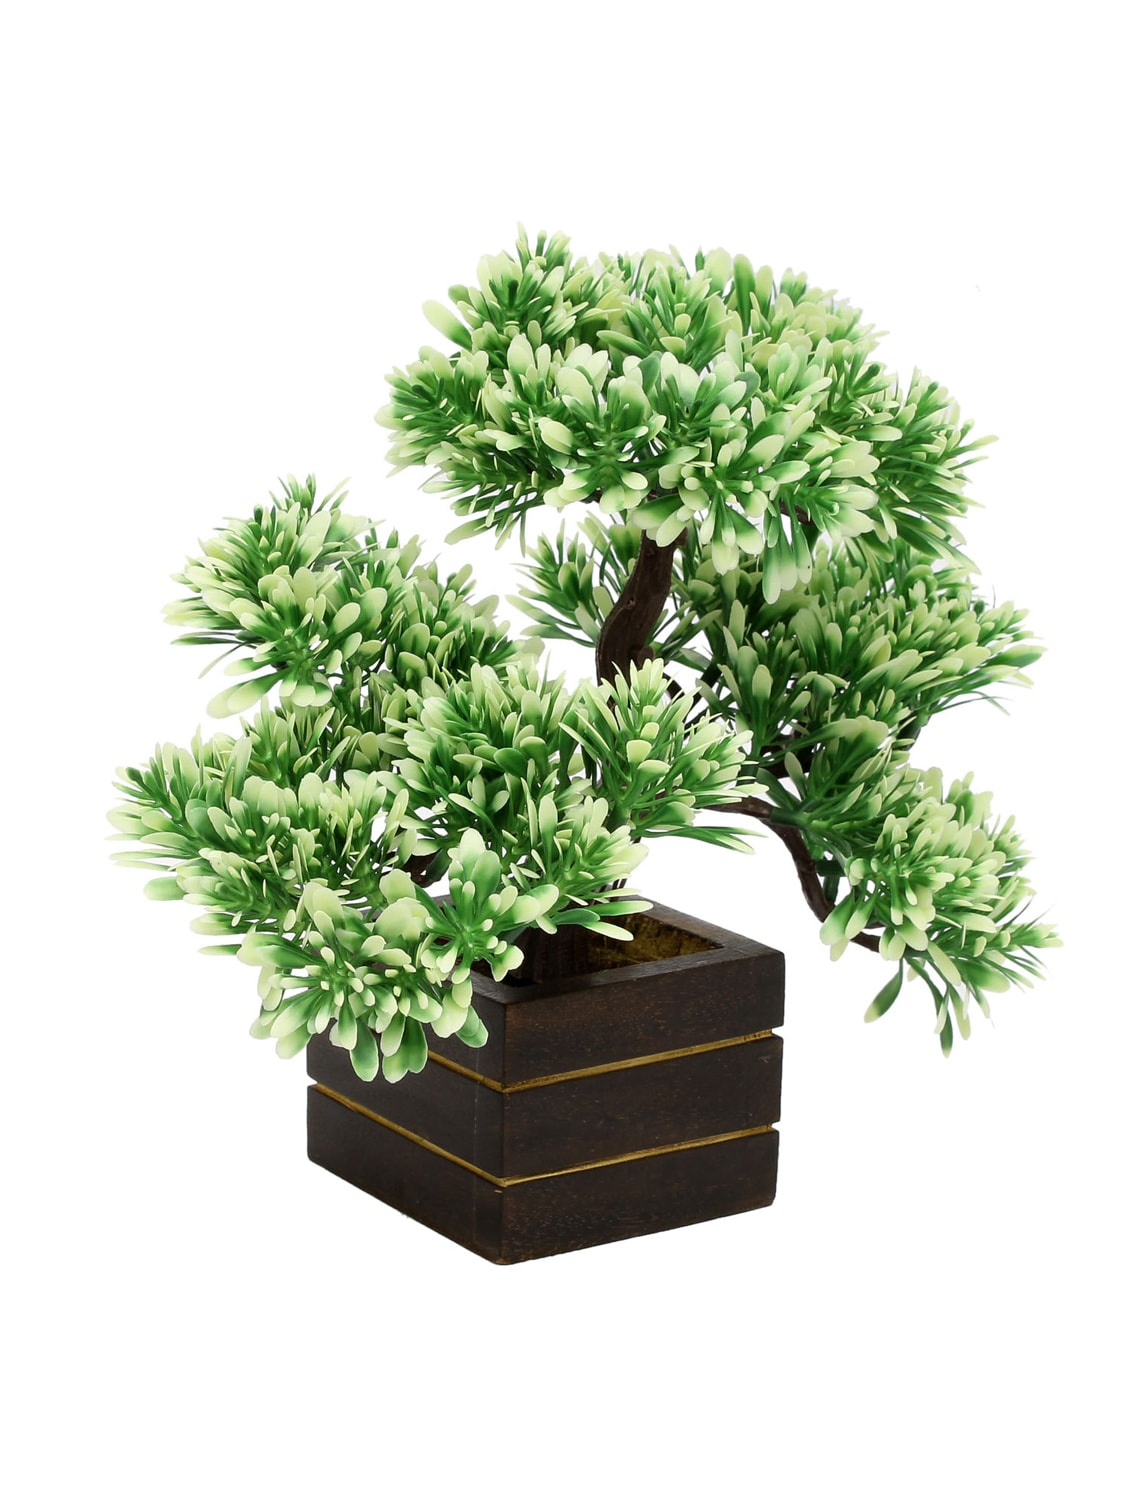 Buy Random Artificial Potted Bonsai Tree With Green And White Leaves